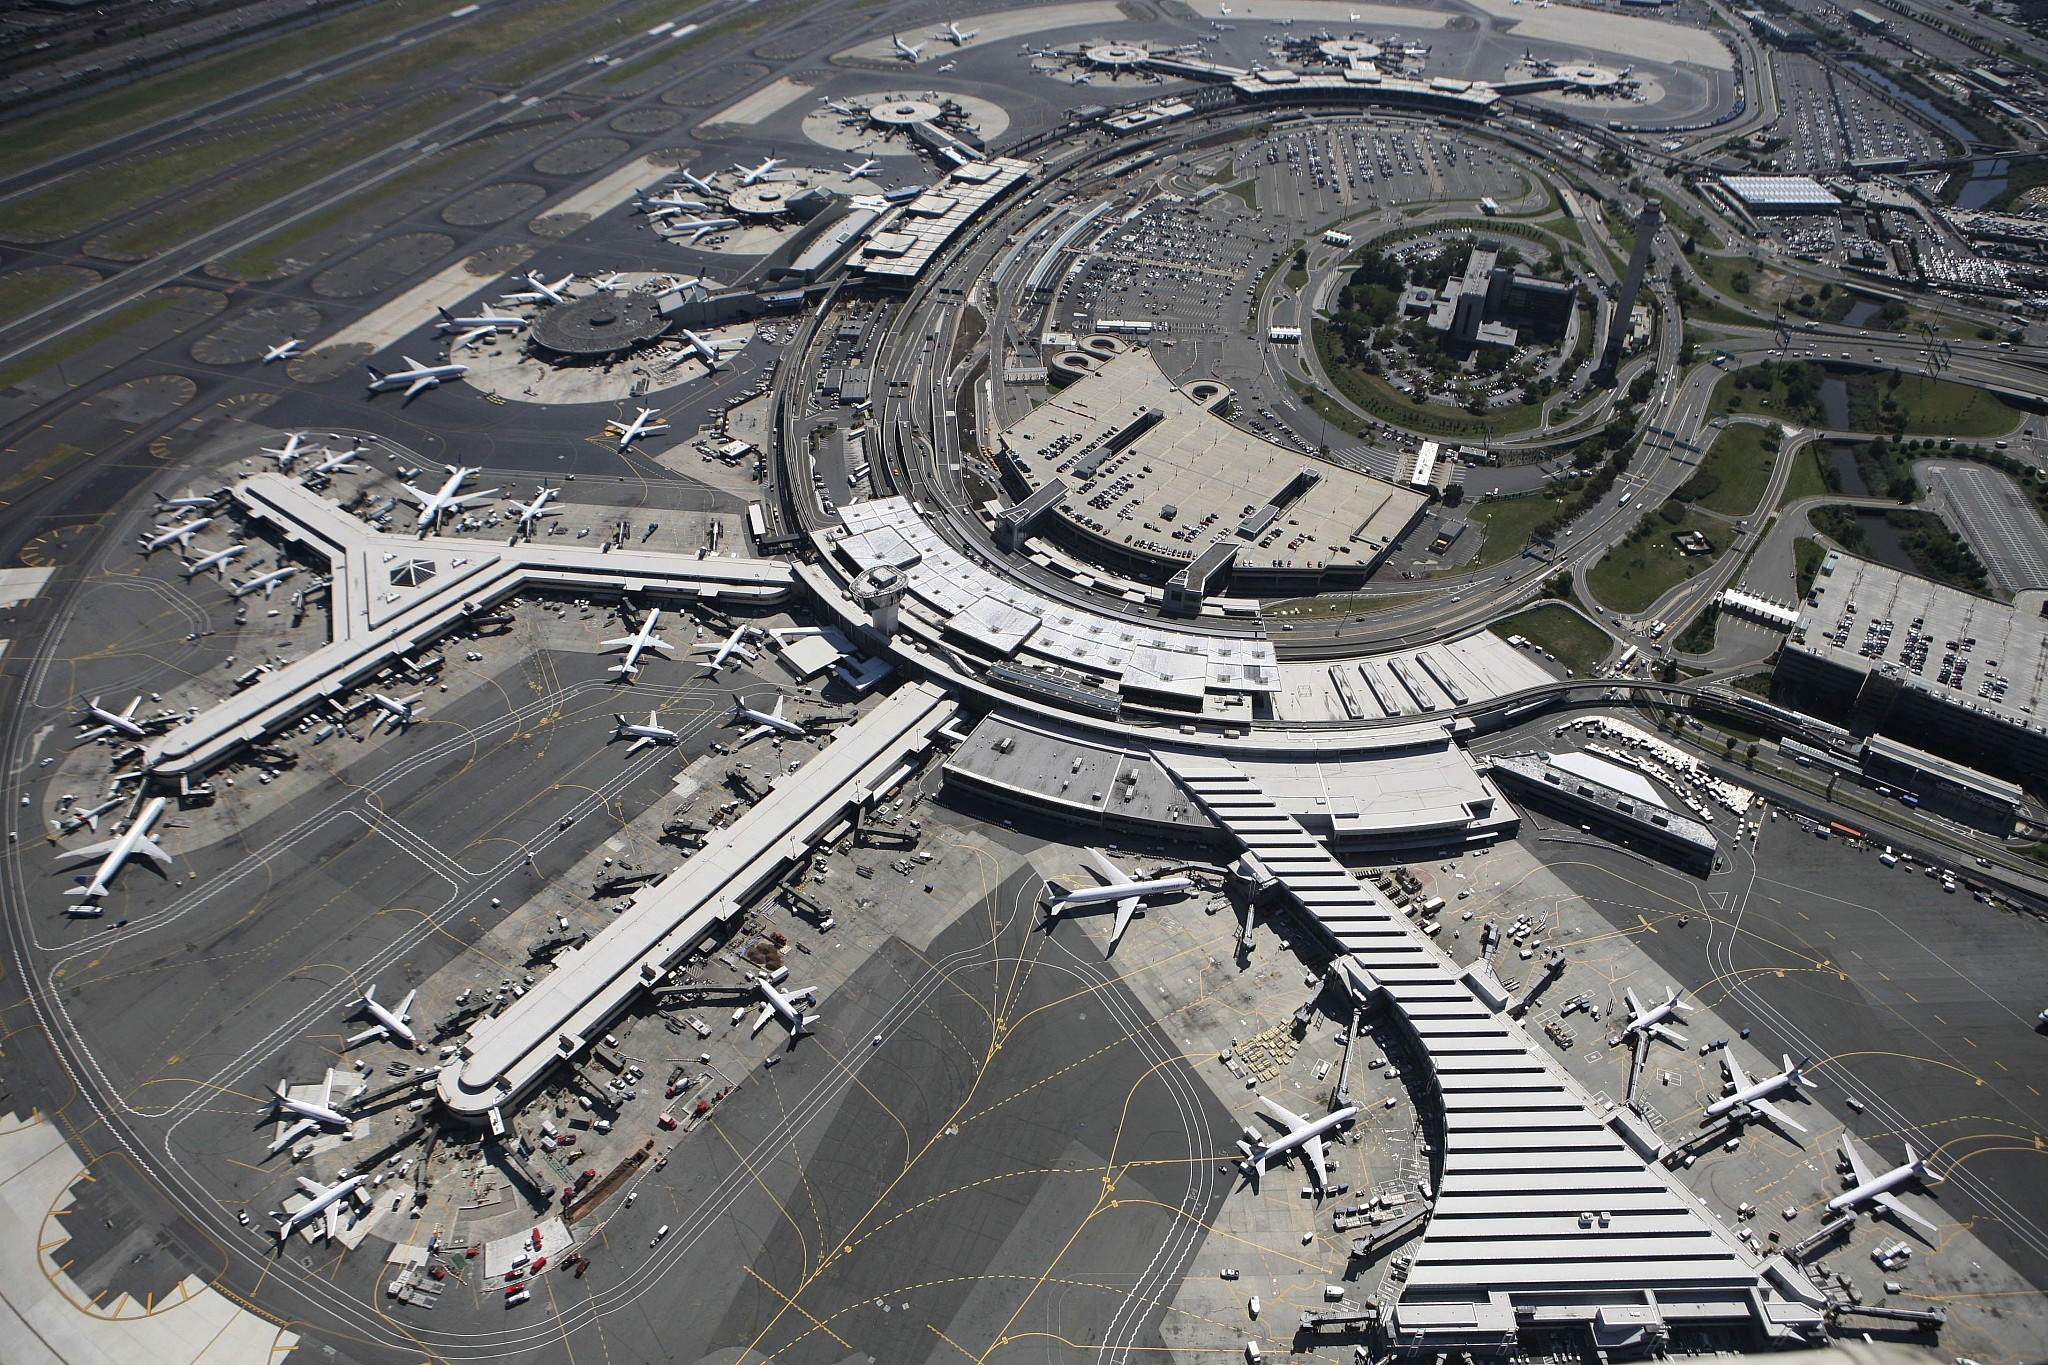 Drone disrupts air traffic into Newark